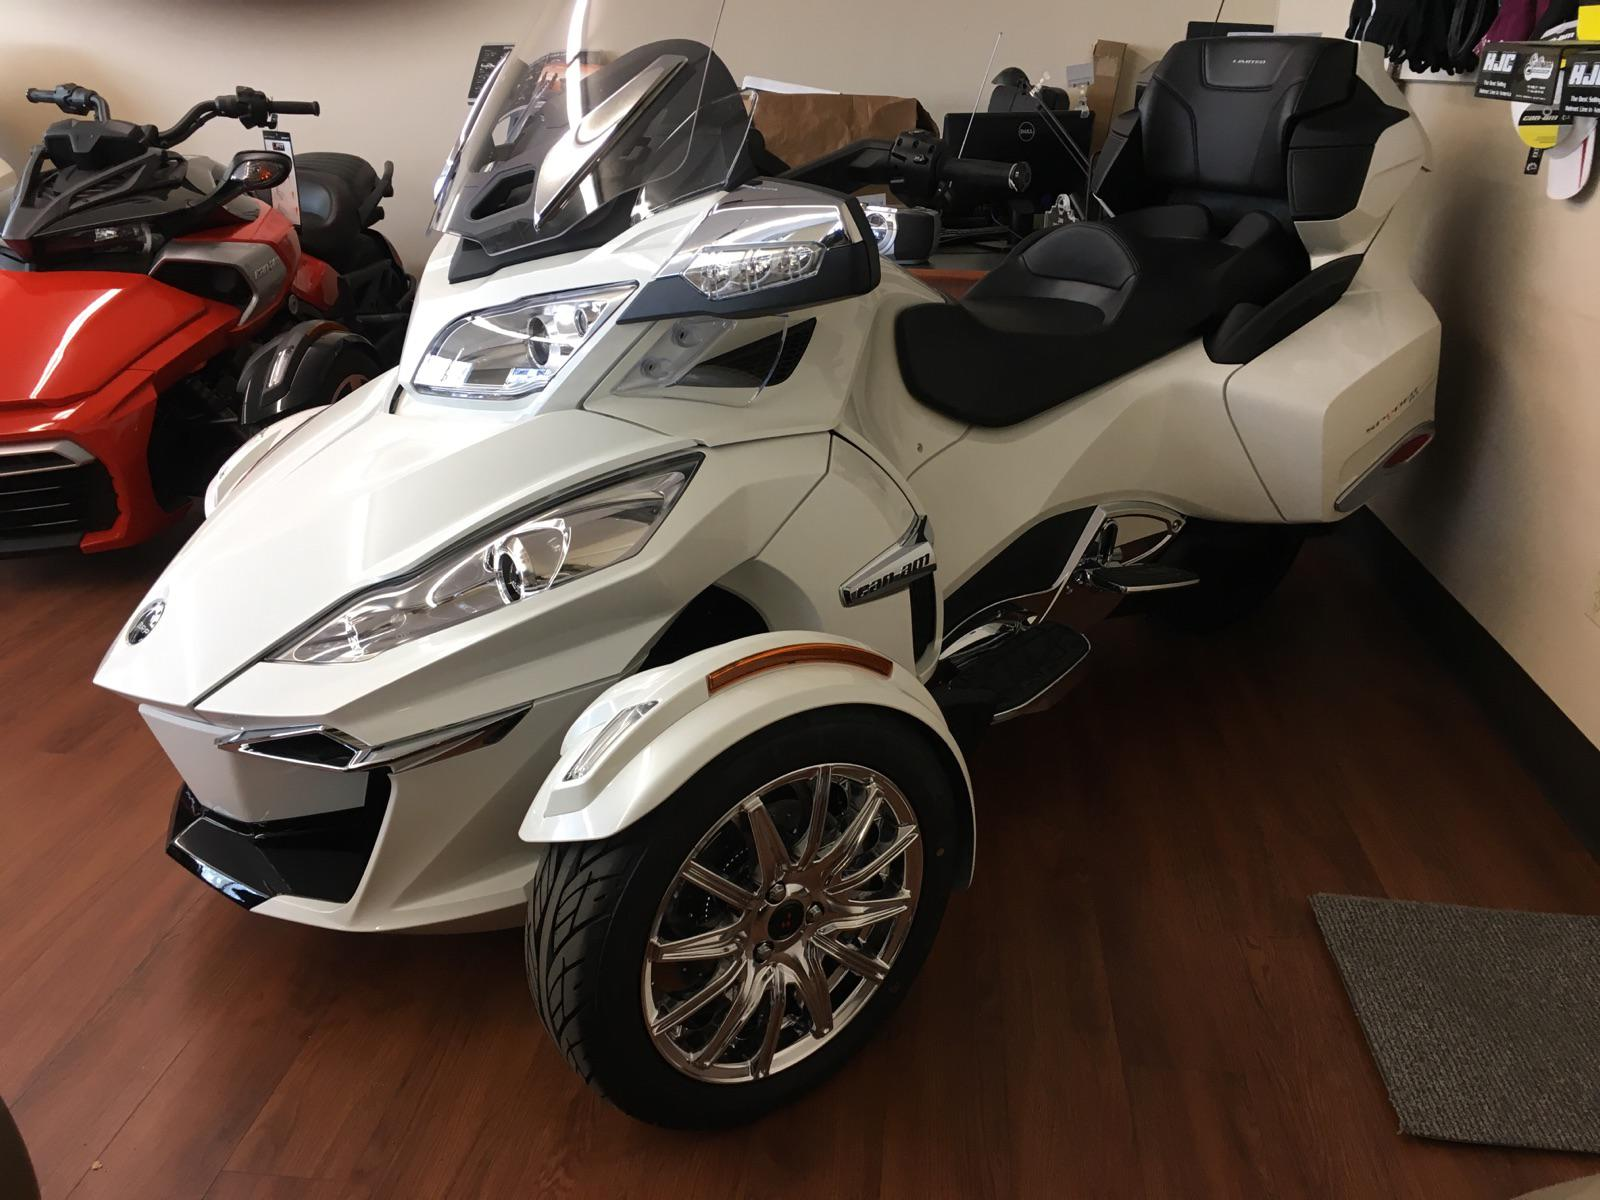 2017 Can-Am RT LIMITED for sale in North Chelmsford, MA | ROUTE 3A MOTORS, INC. (978) 251-4440